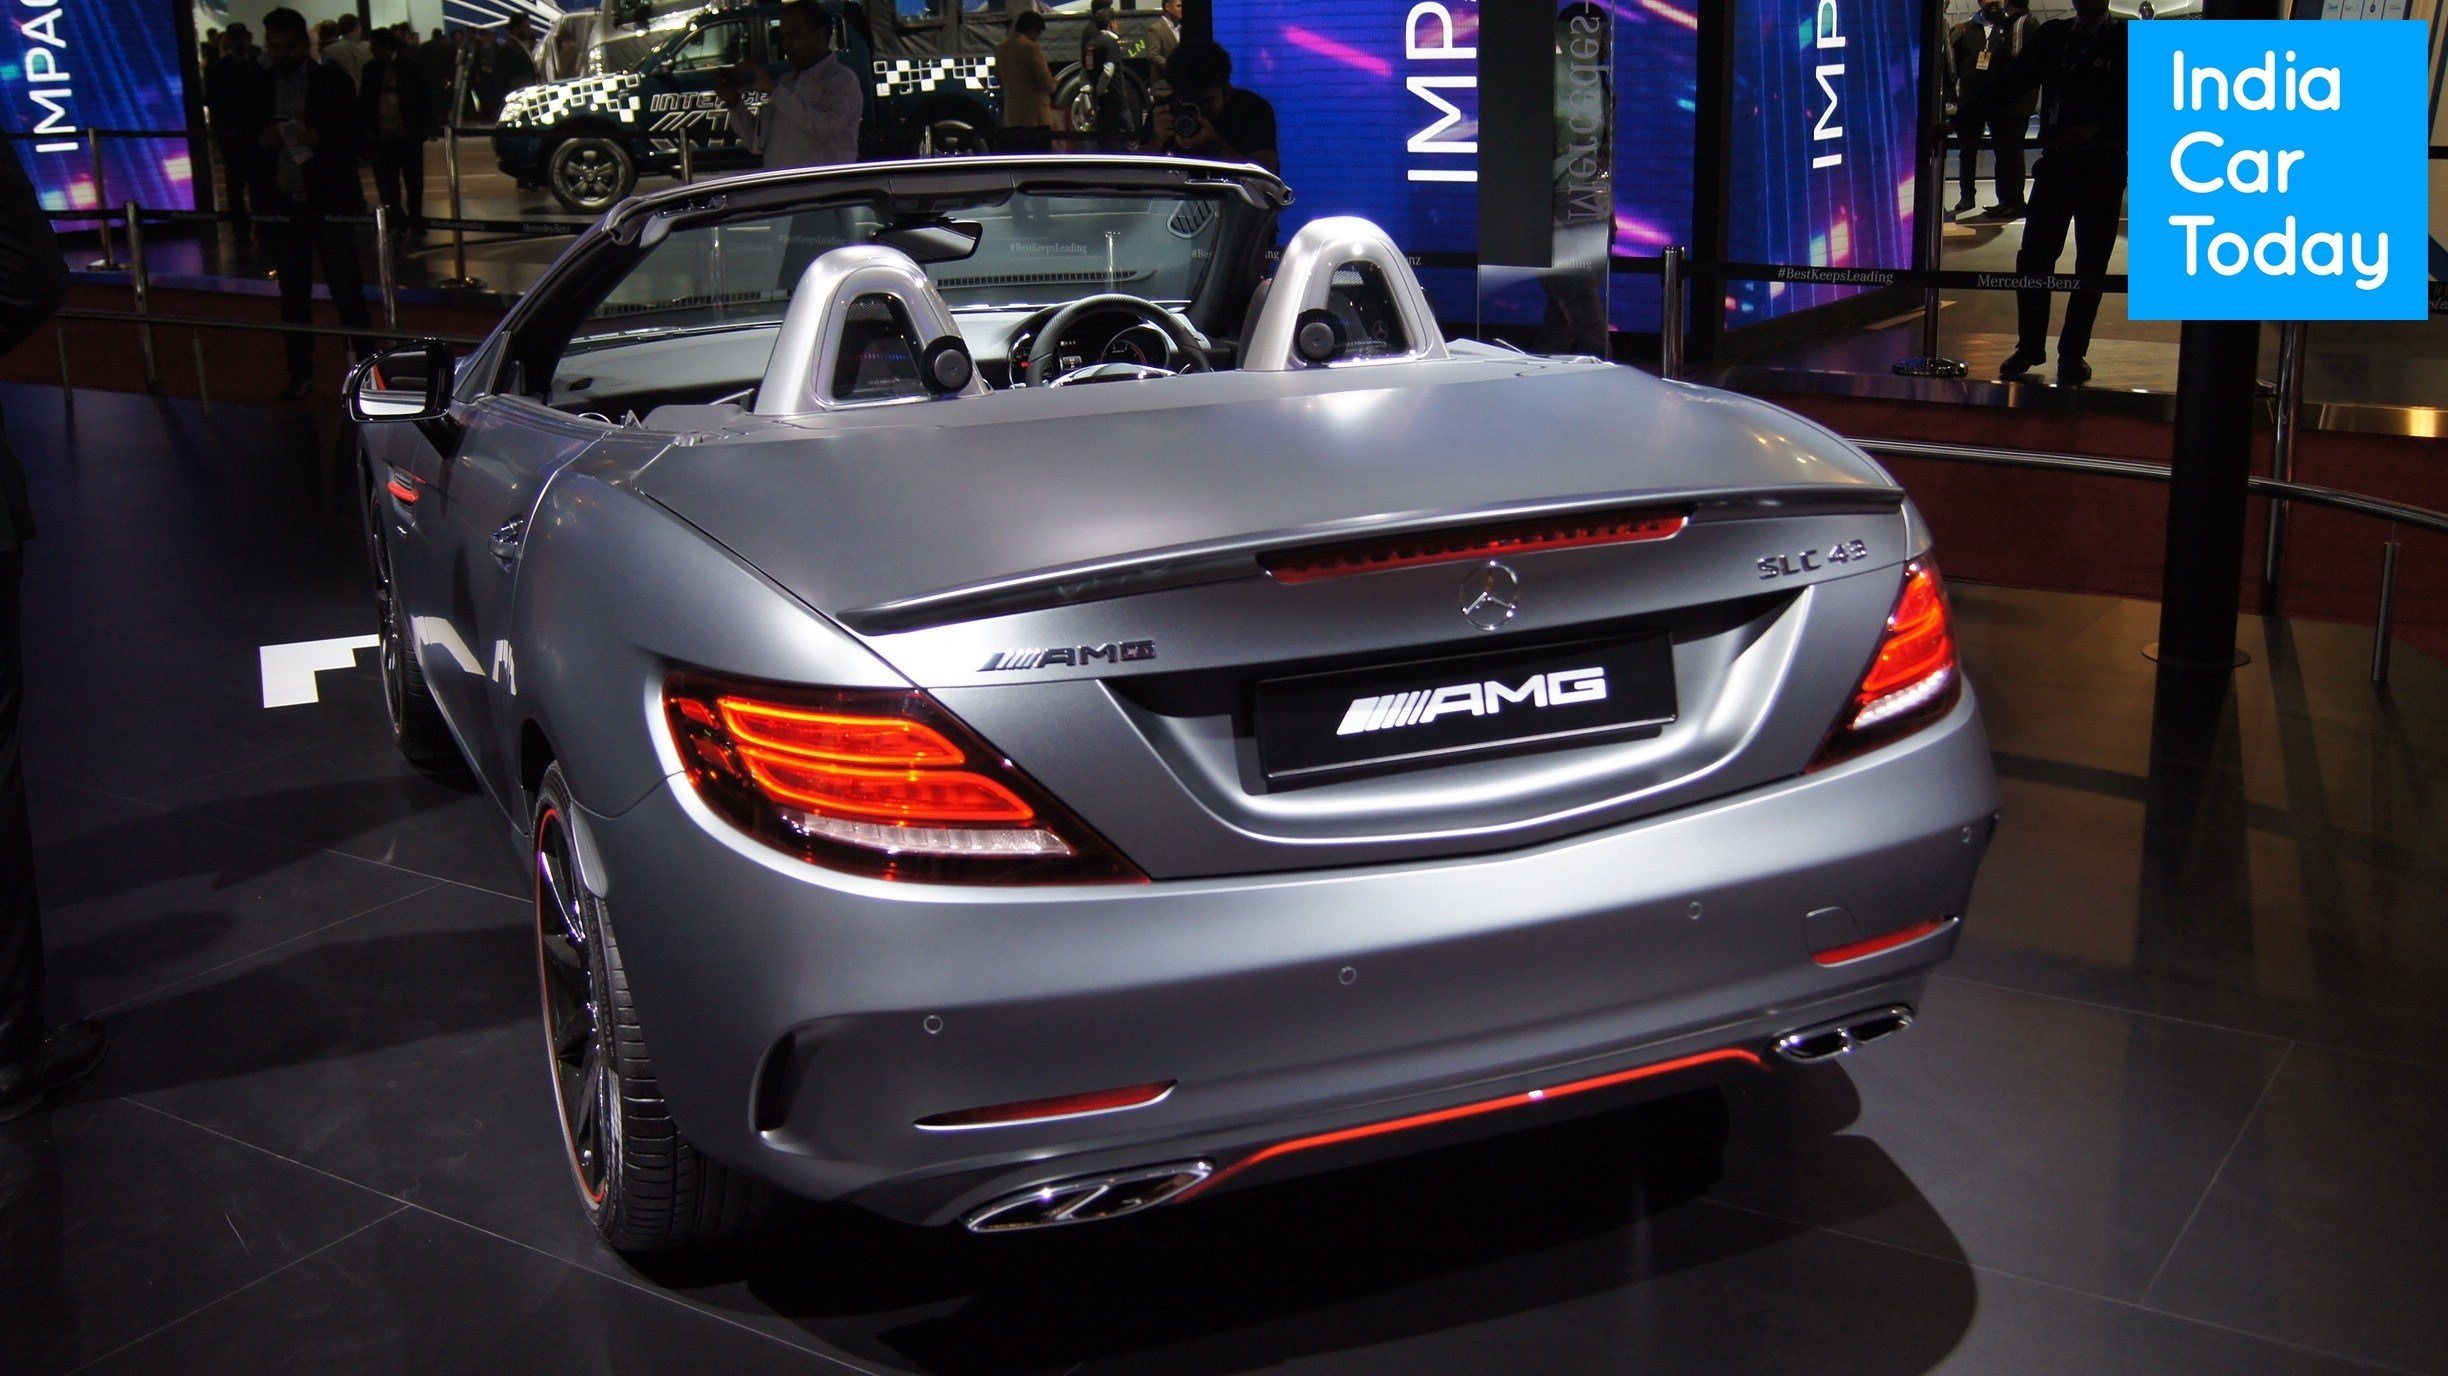 Latest Mercedes Benz Amg Performance Center Auto Expo 2018 Image Free Download